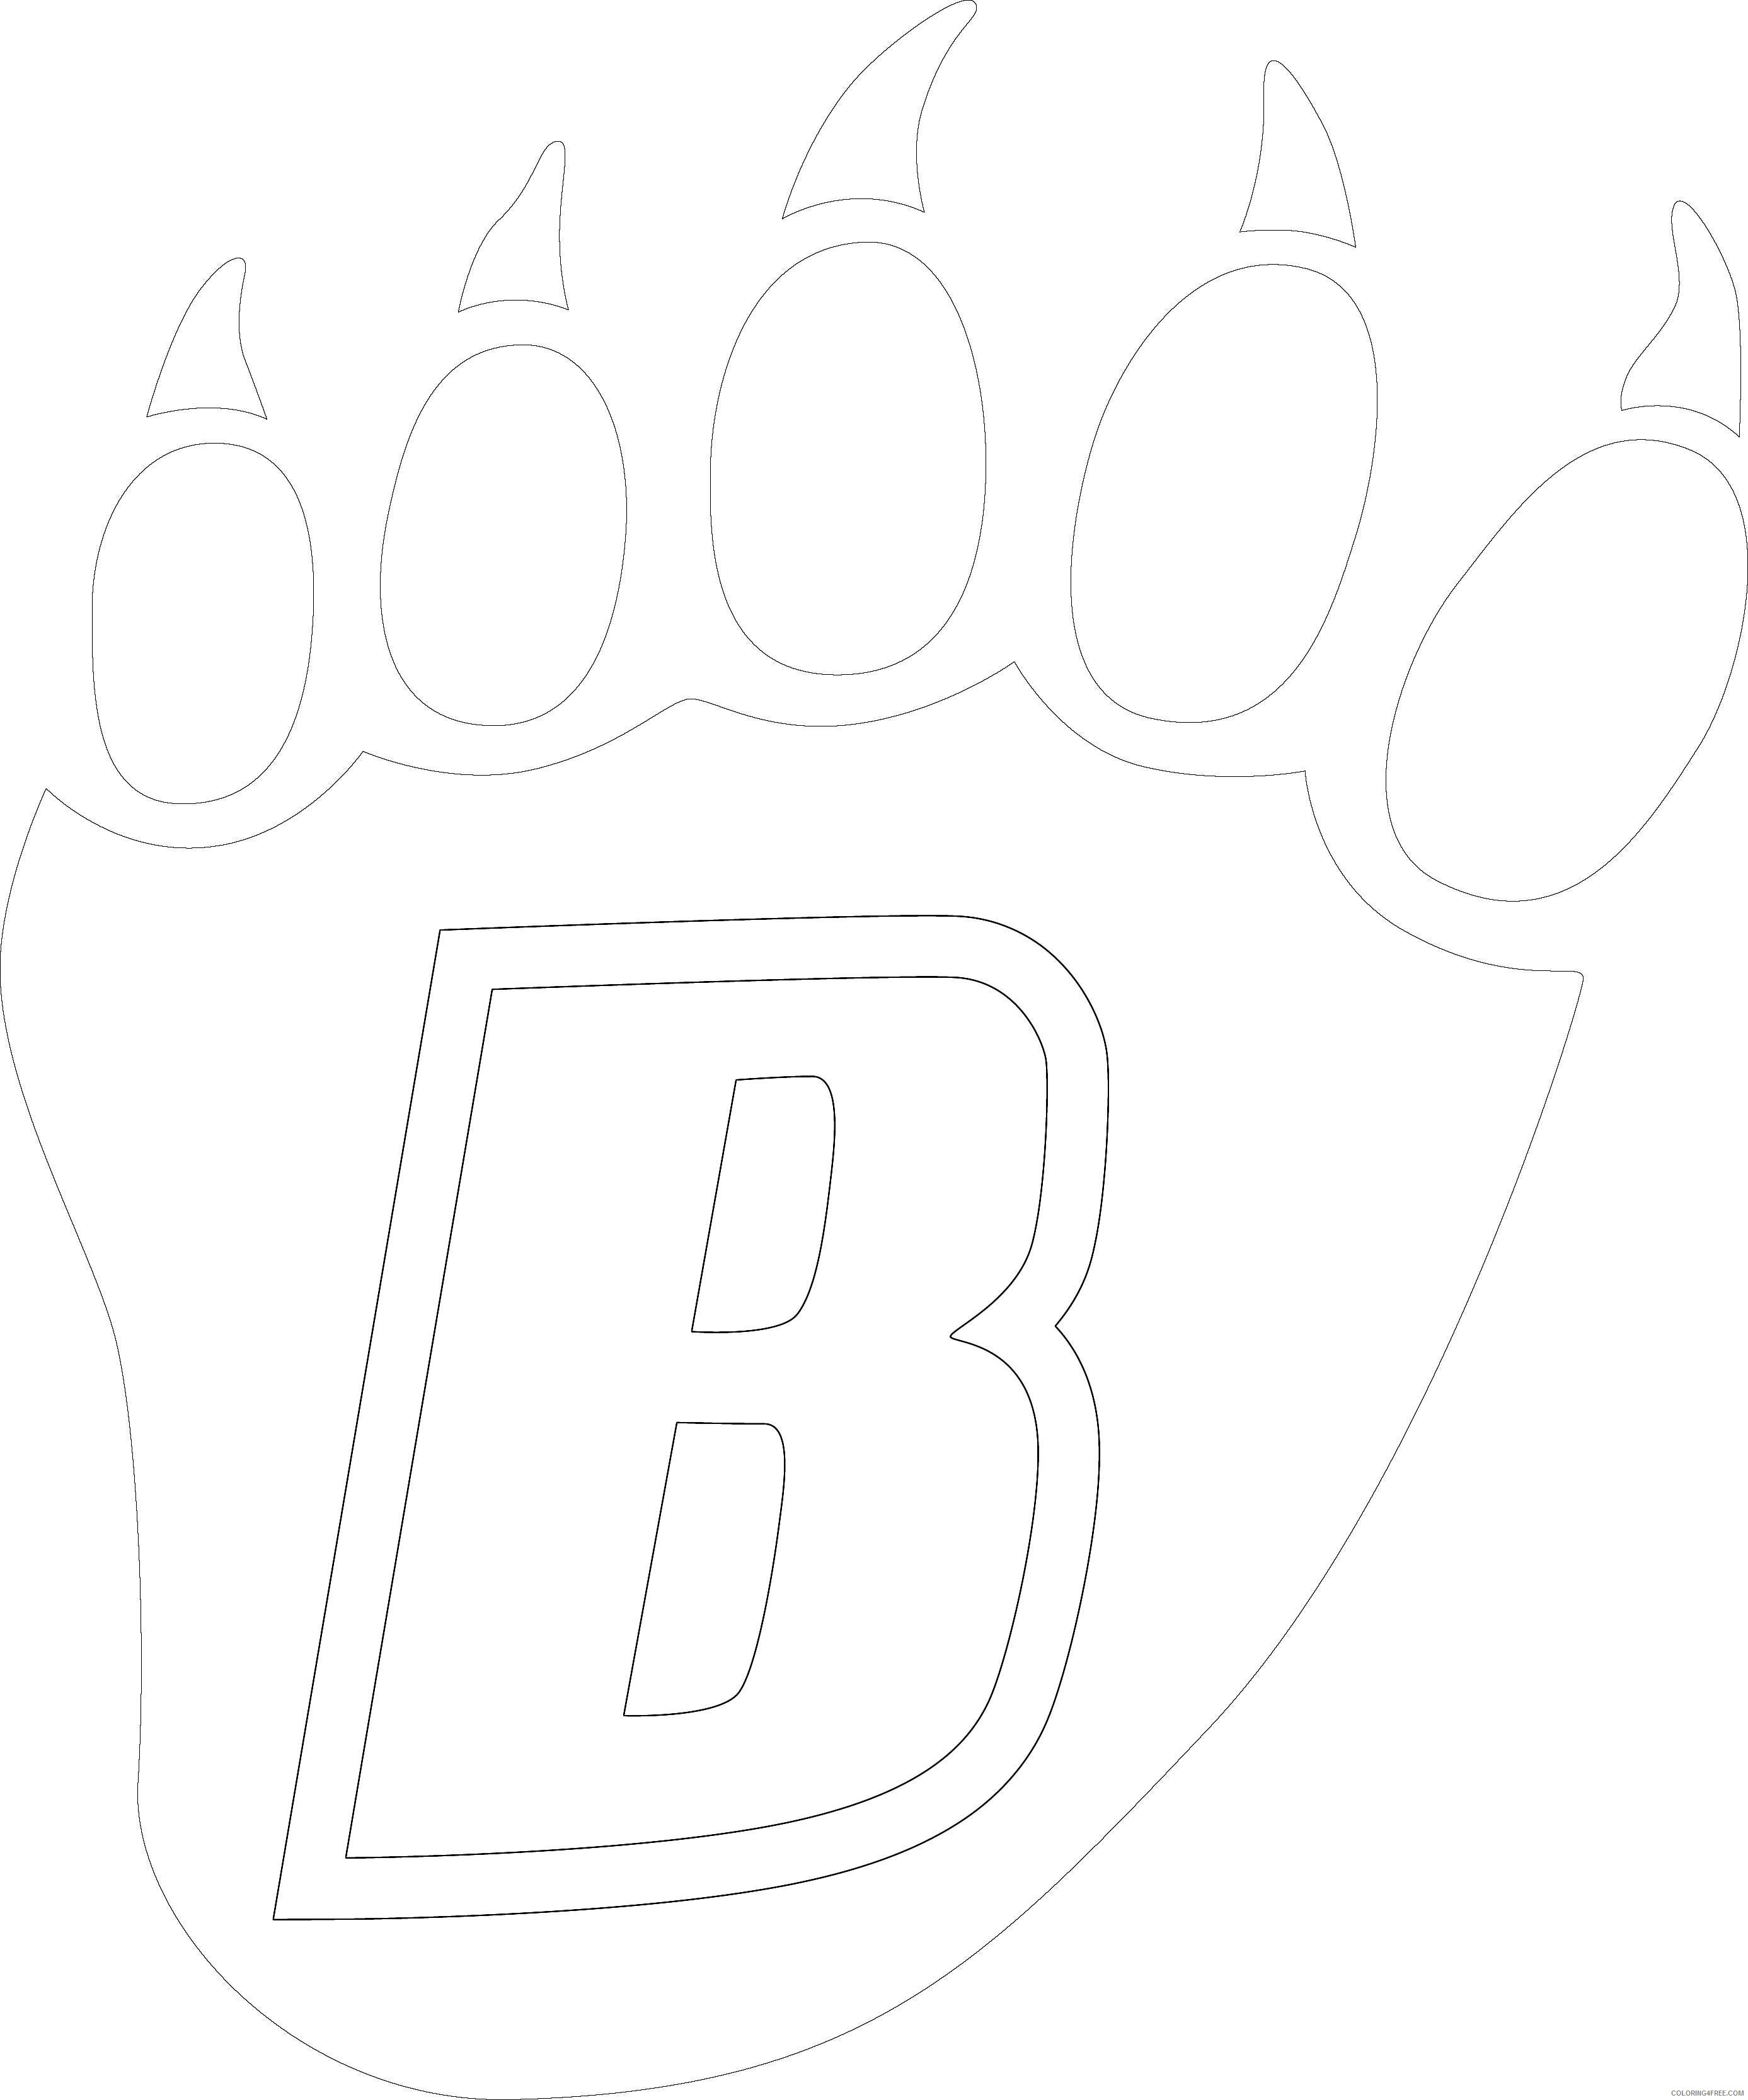 14 bear claw drawings that you can download to you J7S5gV coloring